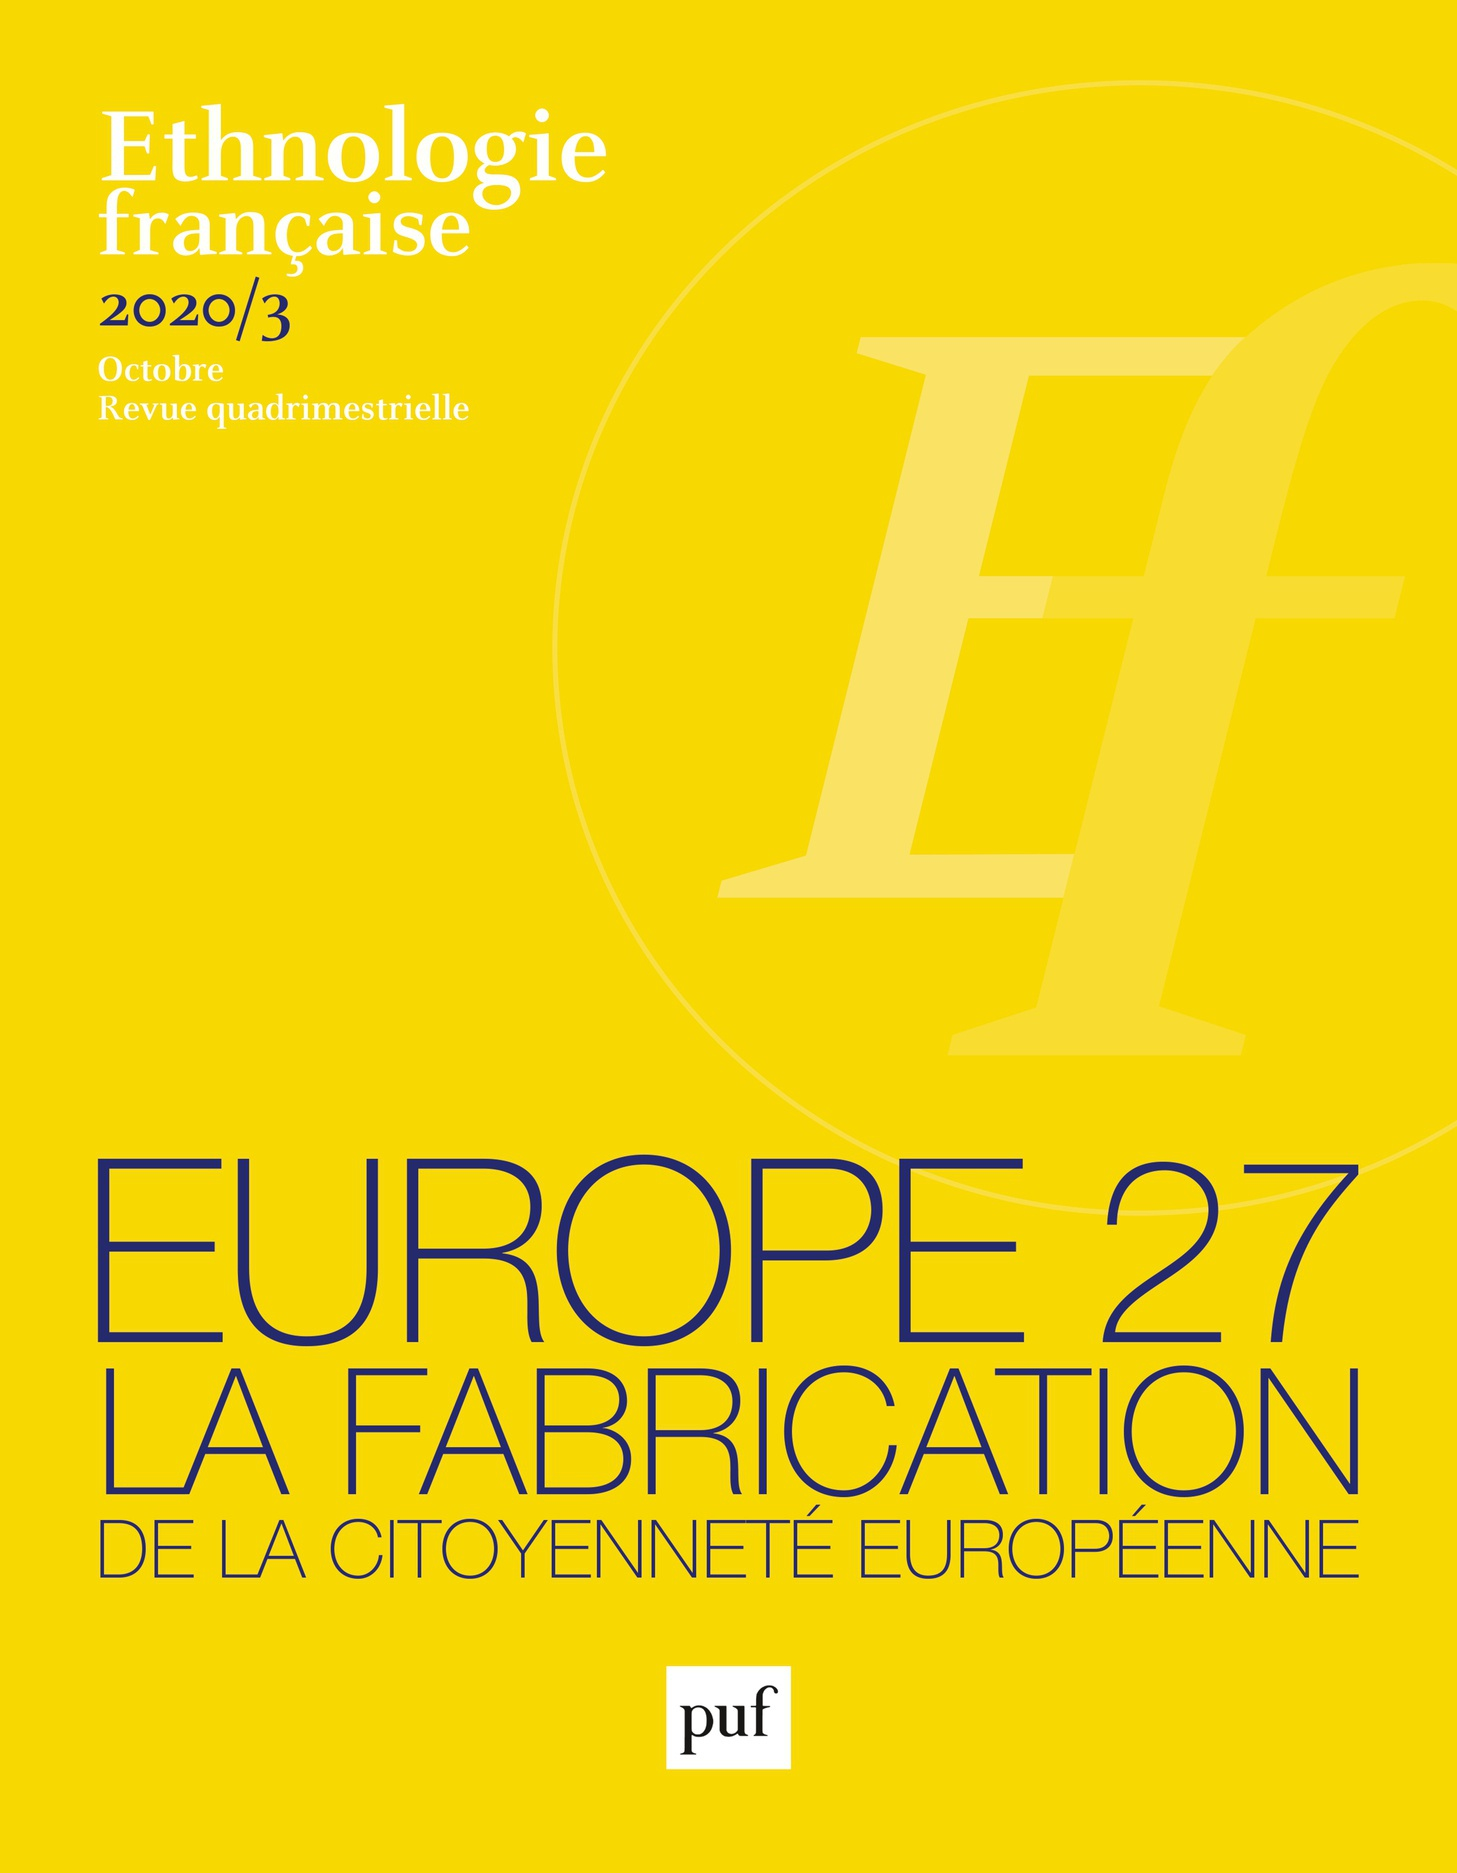 Europe 27: Building European citizenship